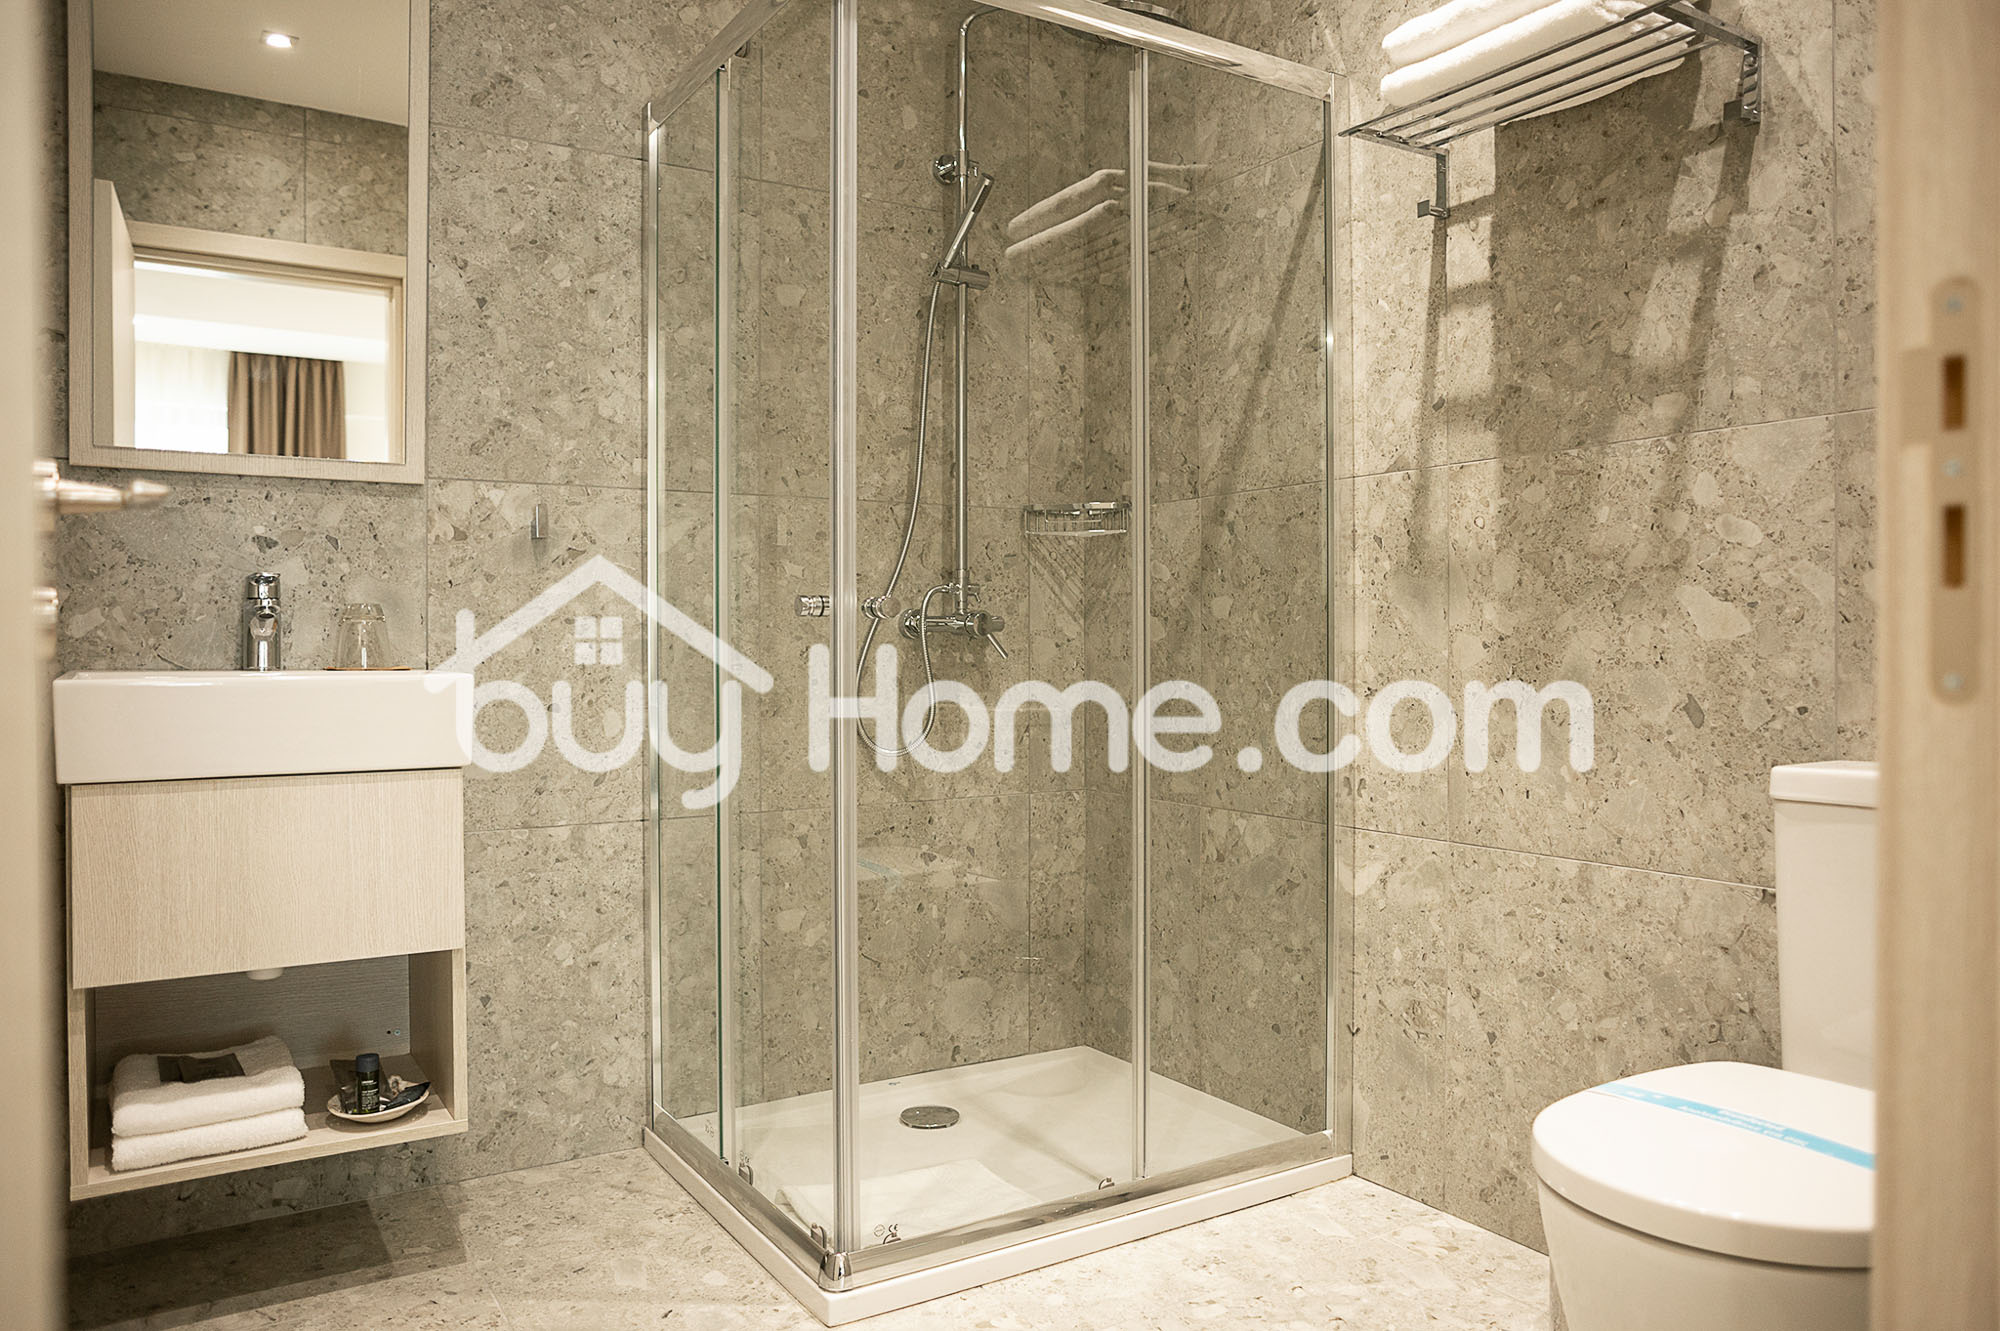 Boutique Hotel | BuyHome